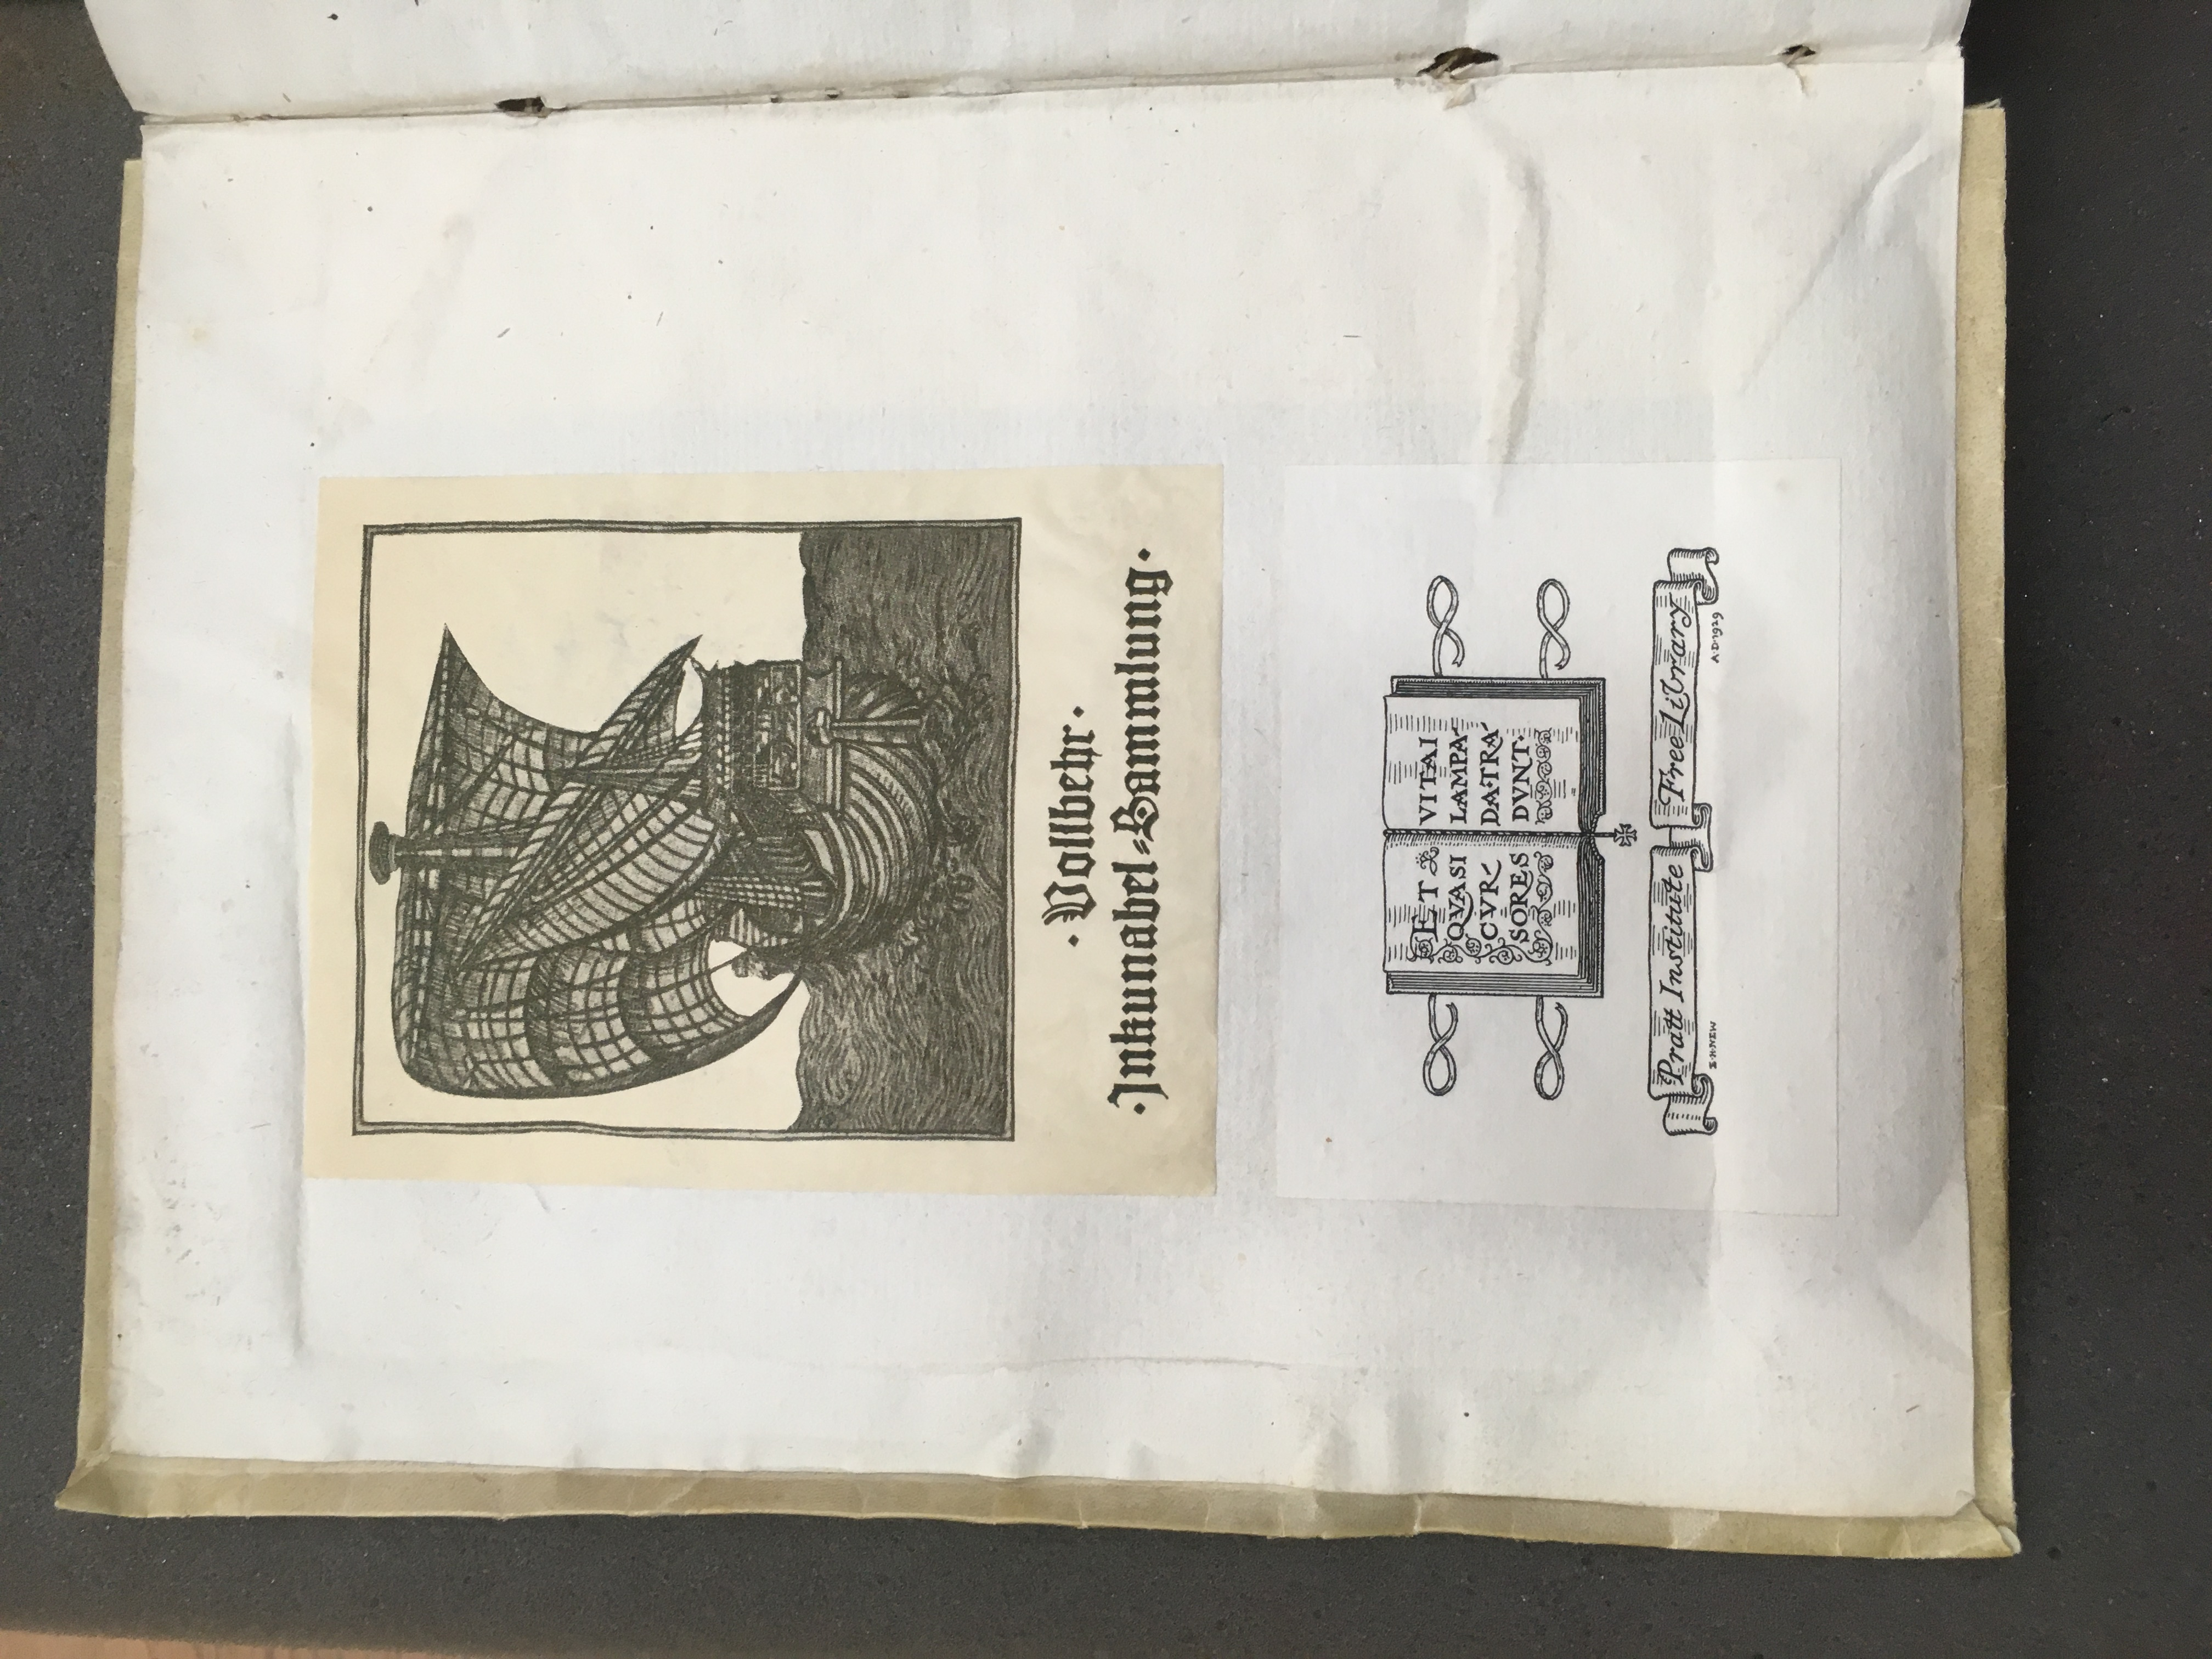 Bookplates from the inner leaf of the Chronicon showing Vollbehr's book plate and Pratt Institute Library book plate